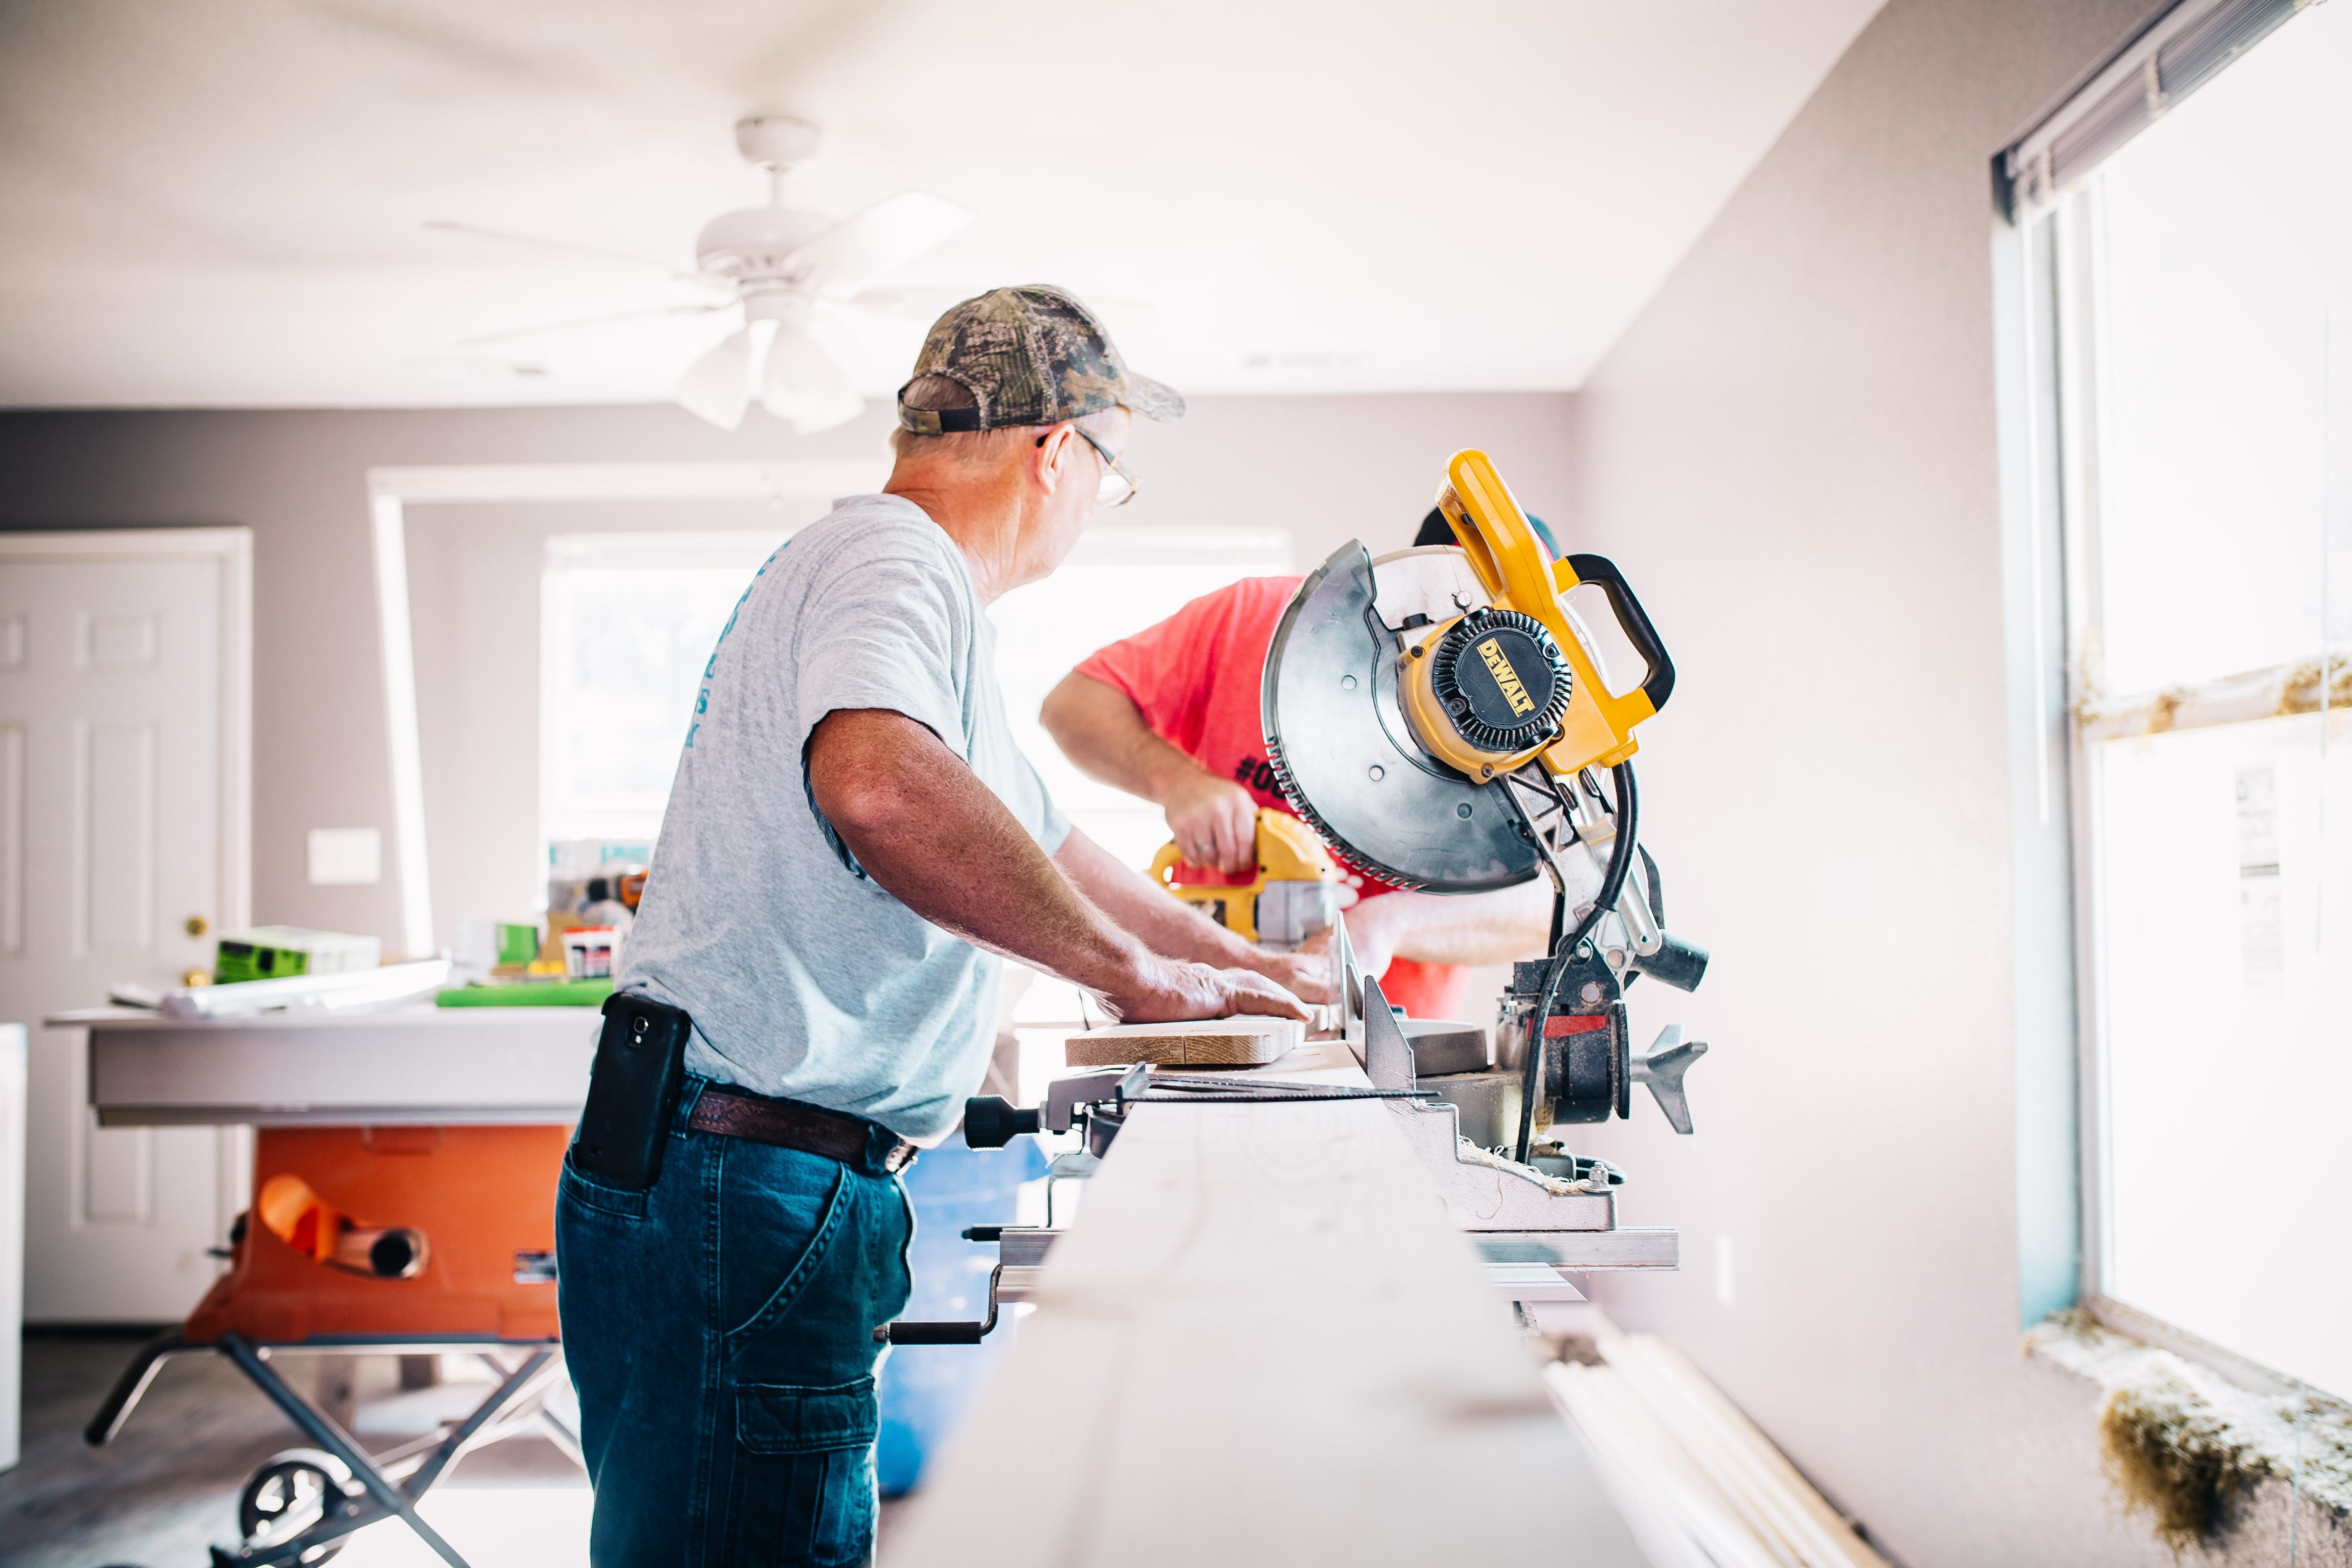 Growth in U.S. home remodeling spending to fall below historic average by 2020